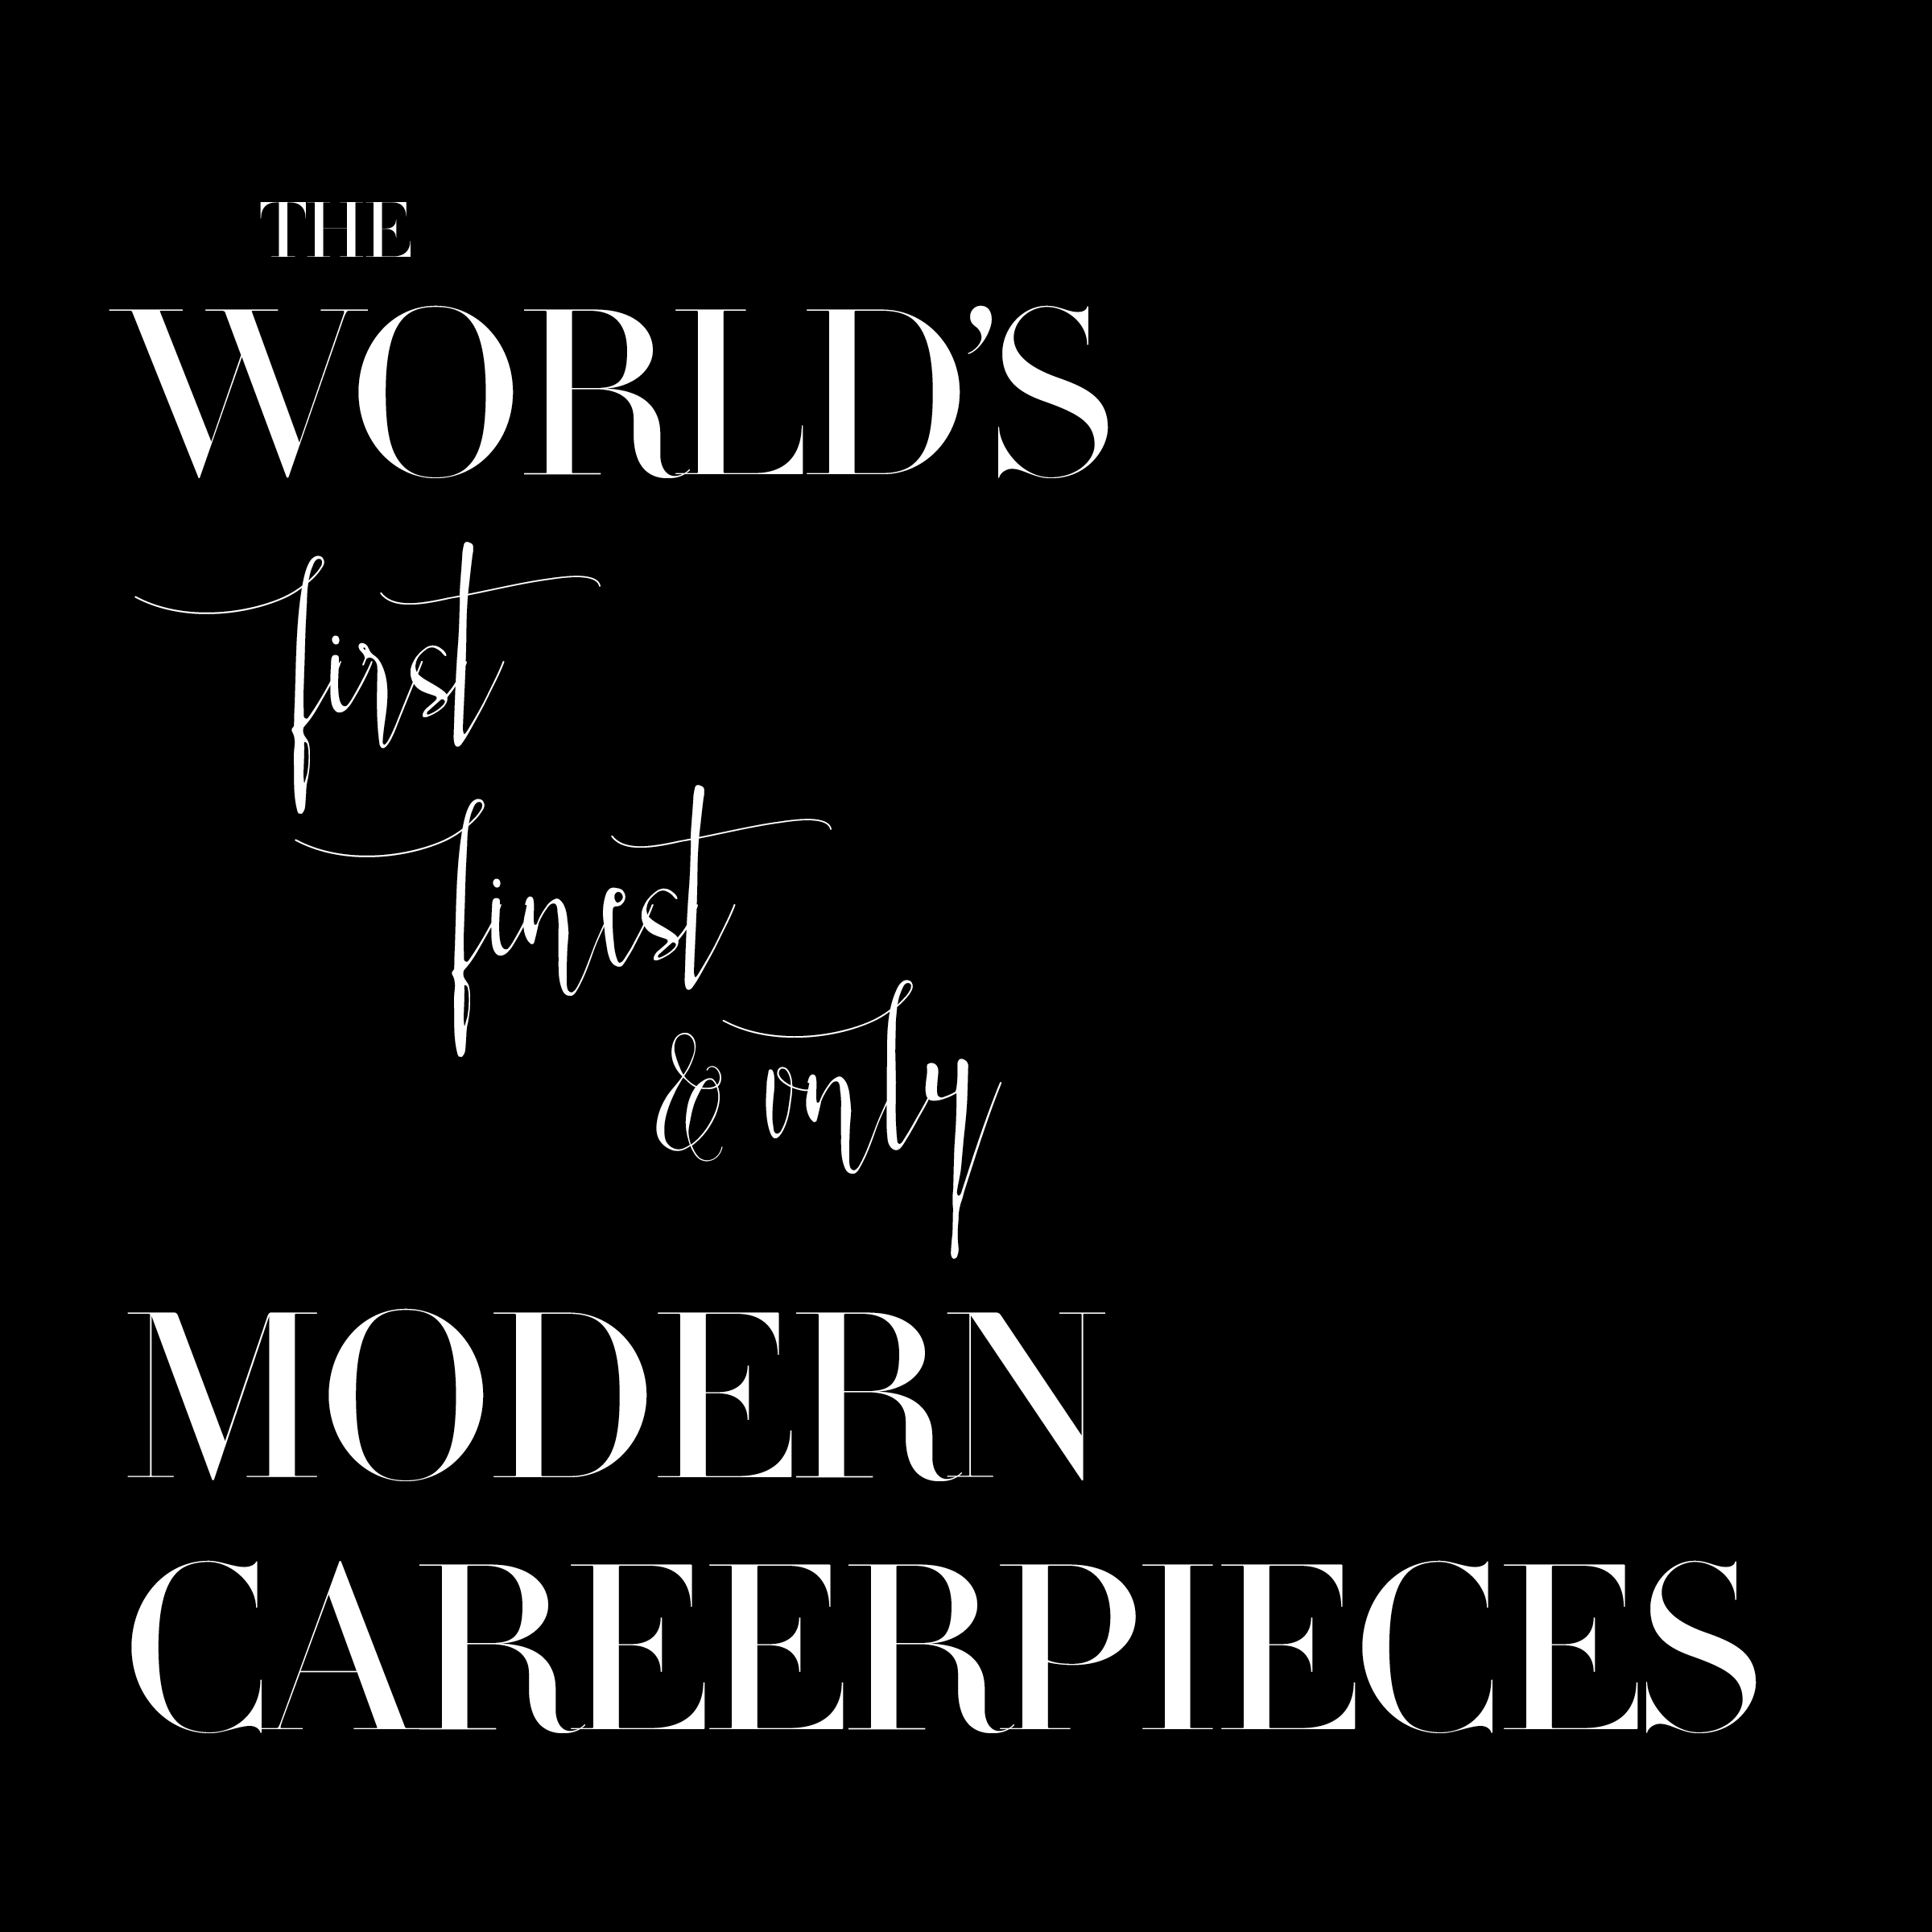 The world's first, finest, and only Modern Careerpieces